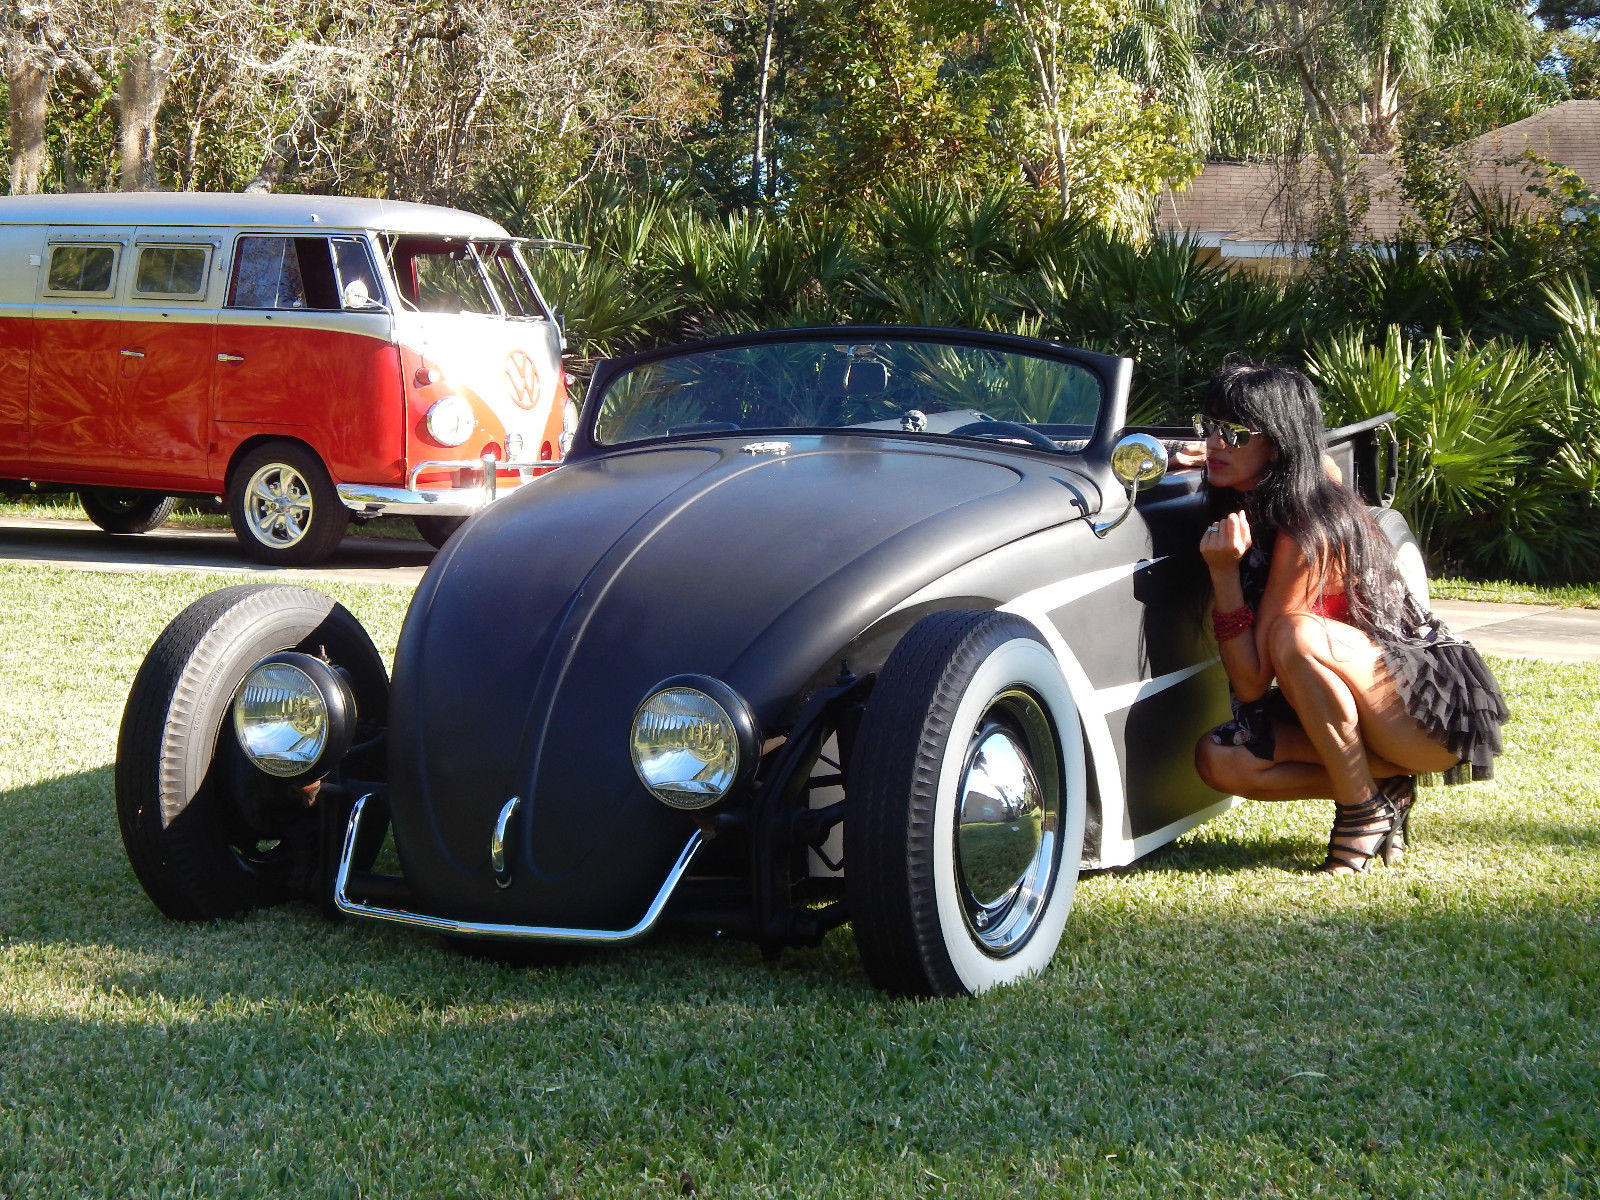 Volkswagen Rat Rod Antique Hot Rod Street Rod Dune Buggy